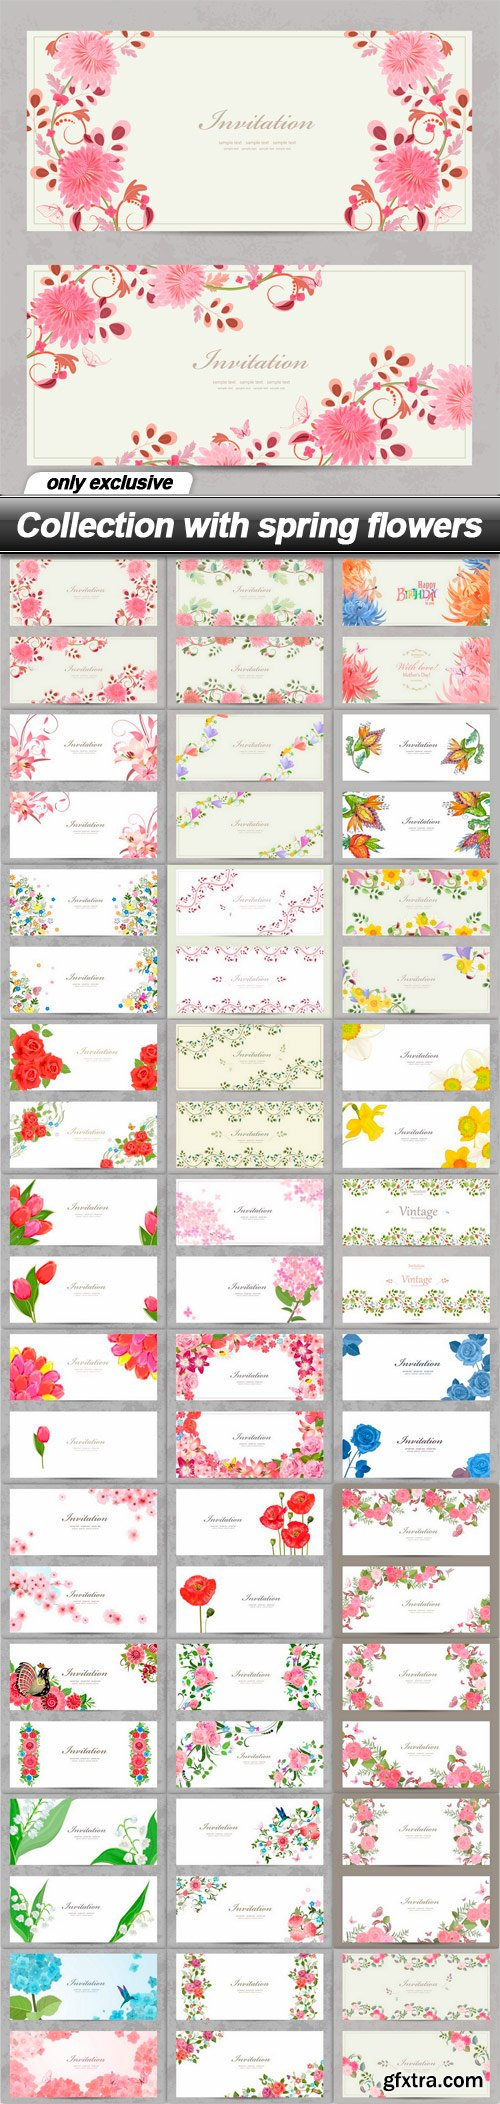 Collection with spring flowers - 30 EPS